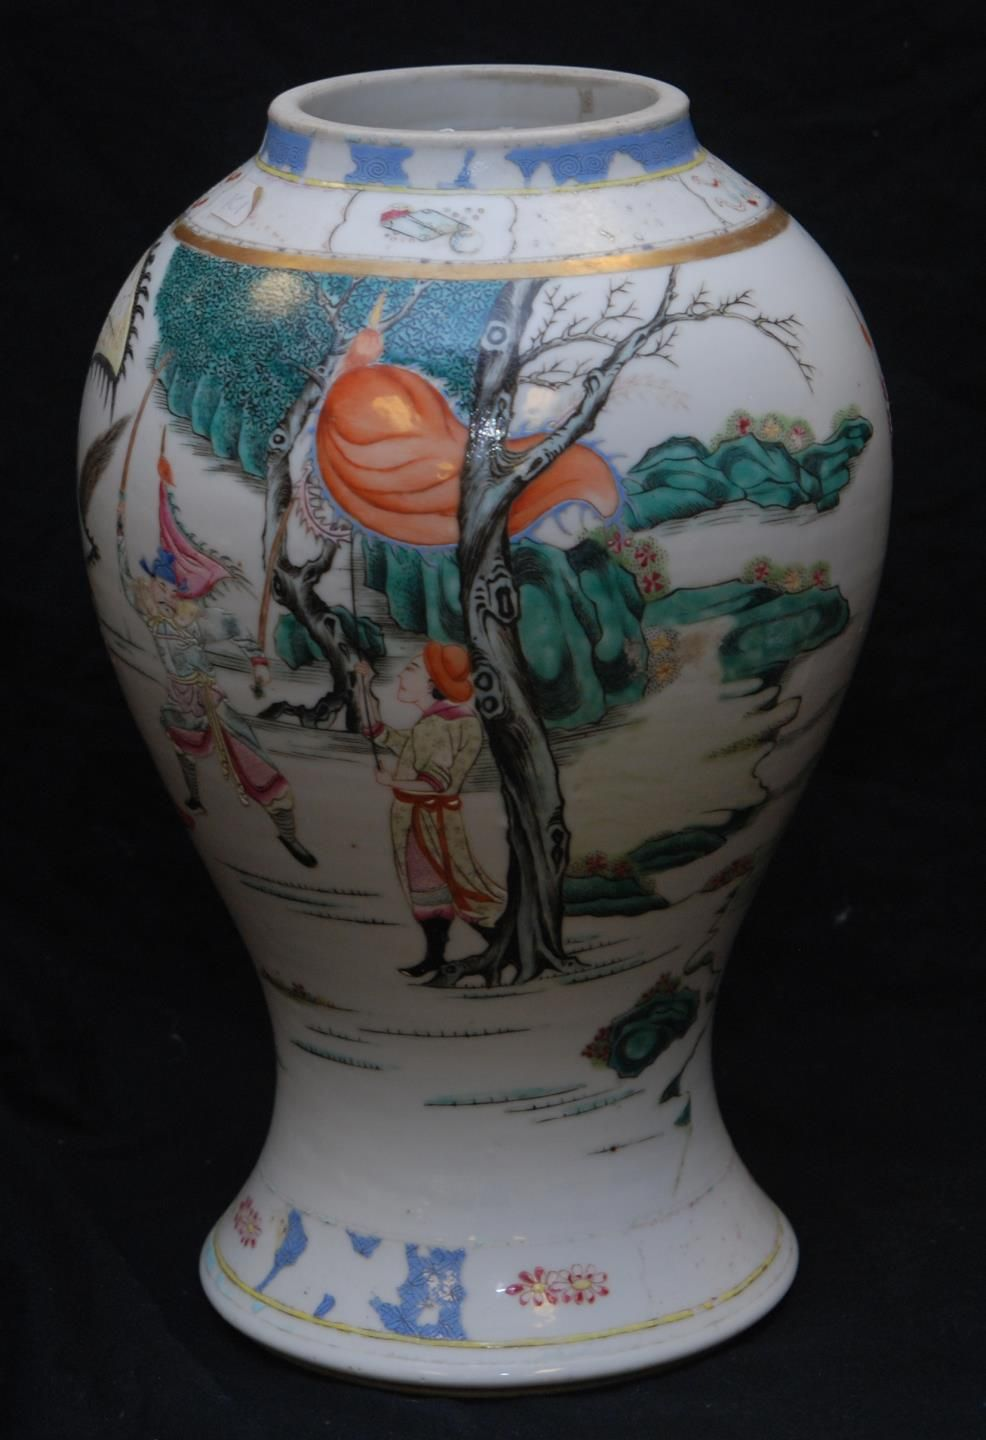 CHINESE VASE DEPICTING WARRIORS Bears the Ch'ien Lung mark 1736-1795